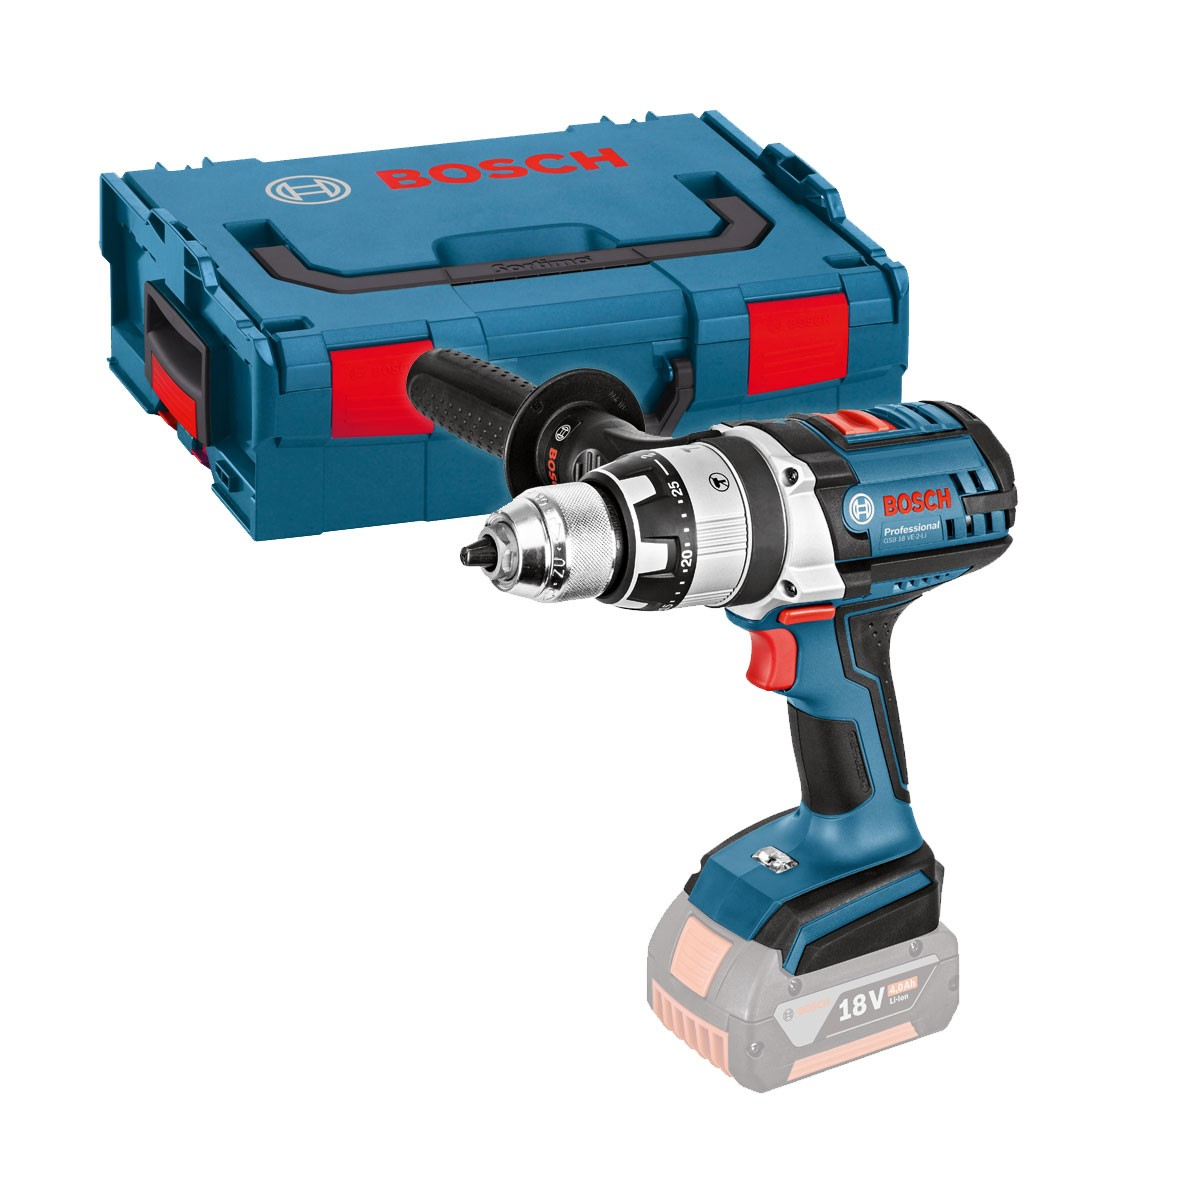 Bosch GSB 18 VE-2-LI RS Combi Drill Body Only in L-Boxx